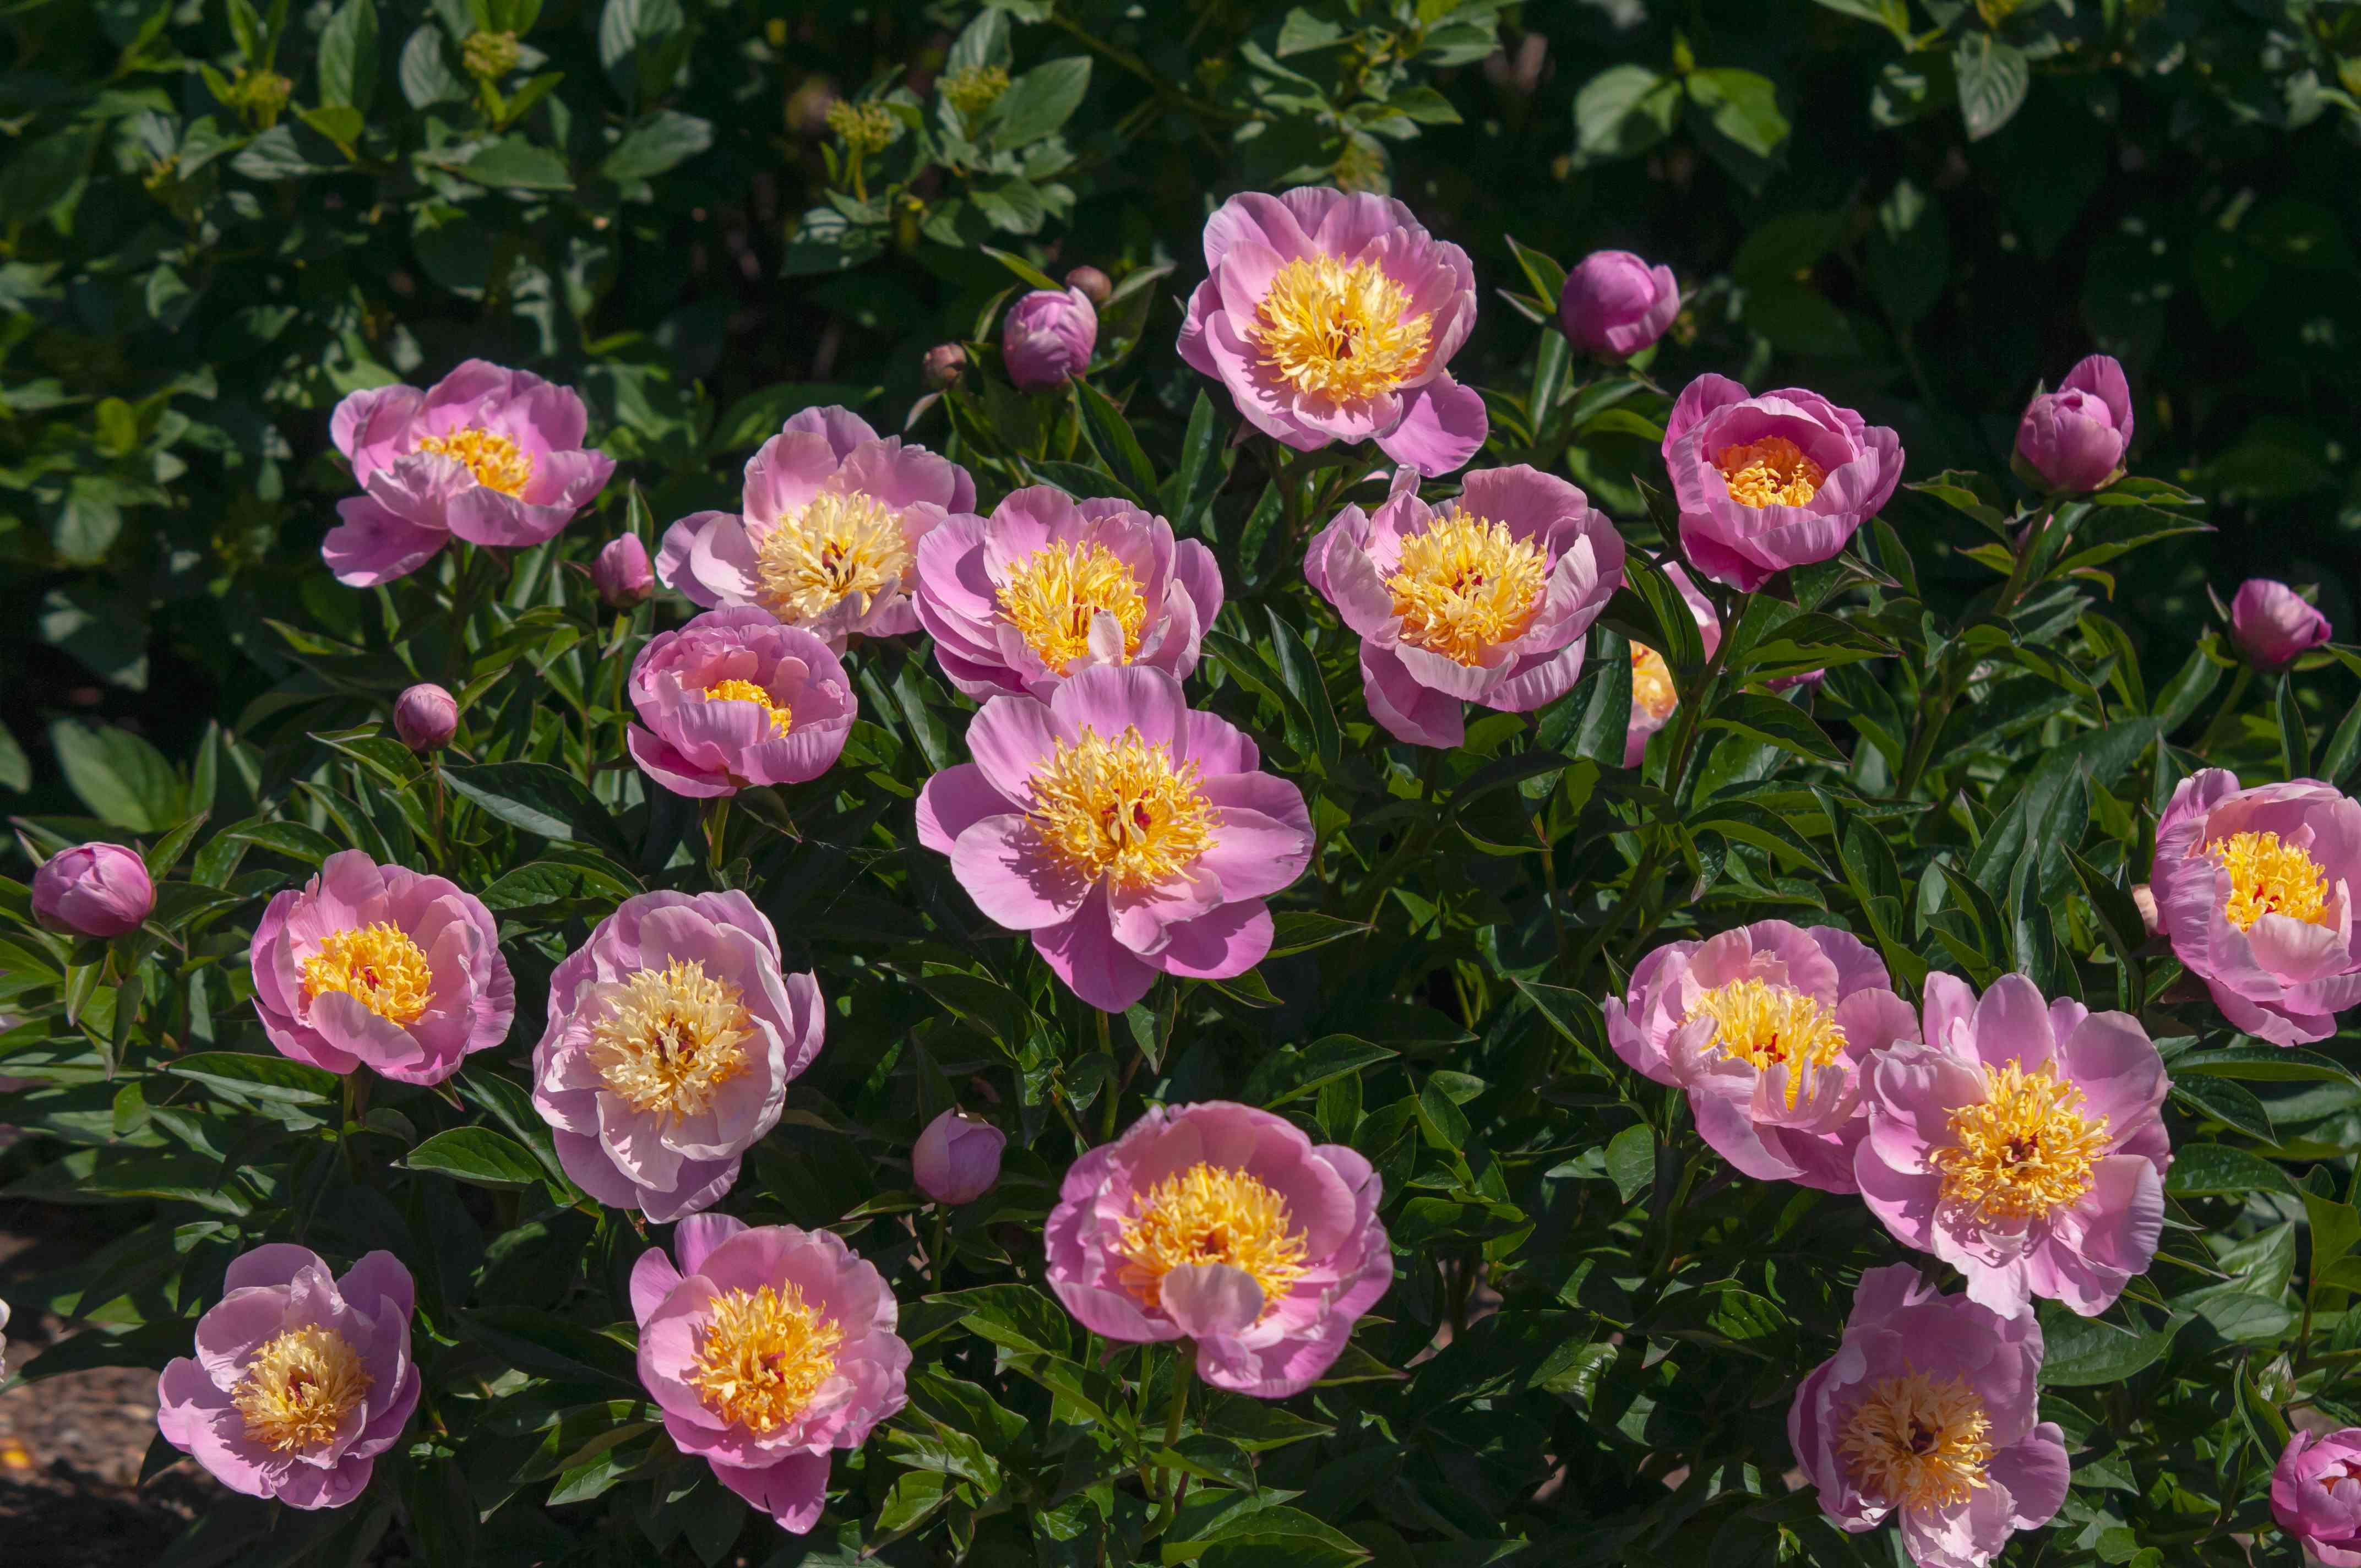 Pink peony plants in english garden in sunlight